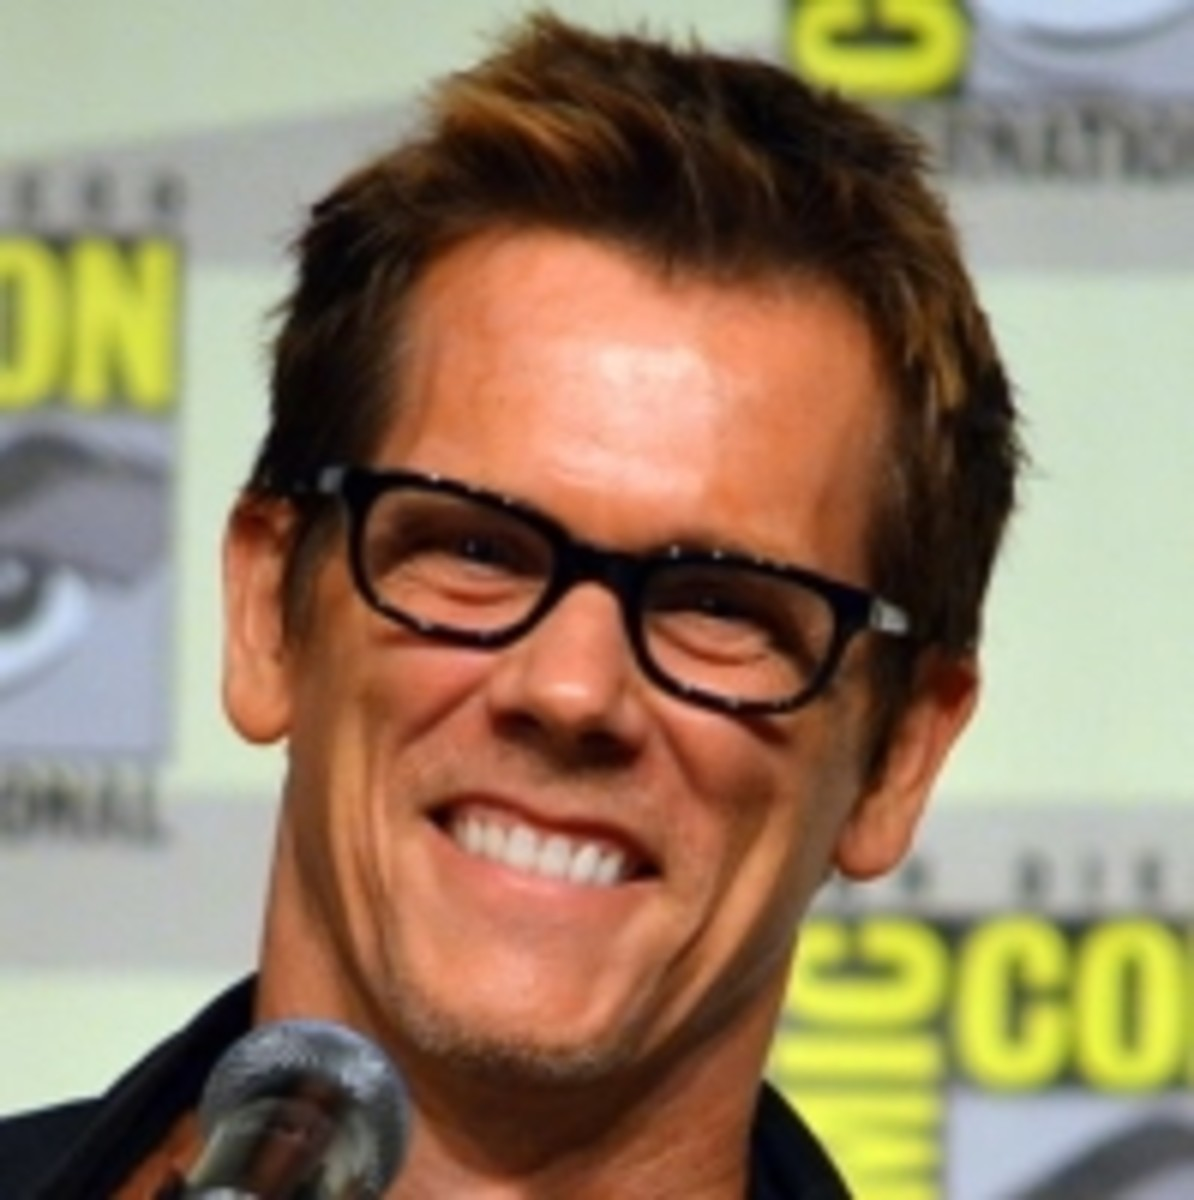 Kevin Bacon, married since 1988